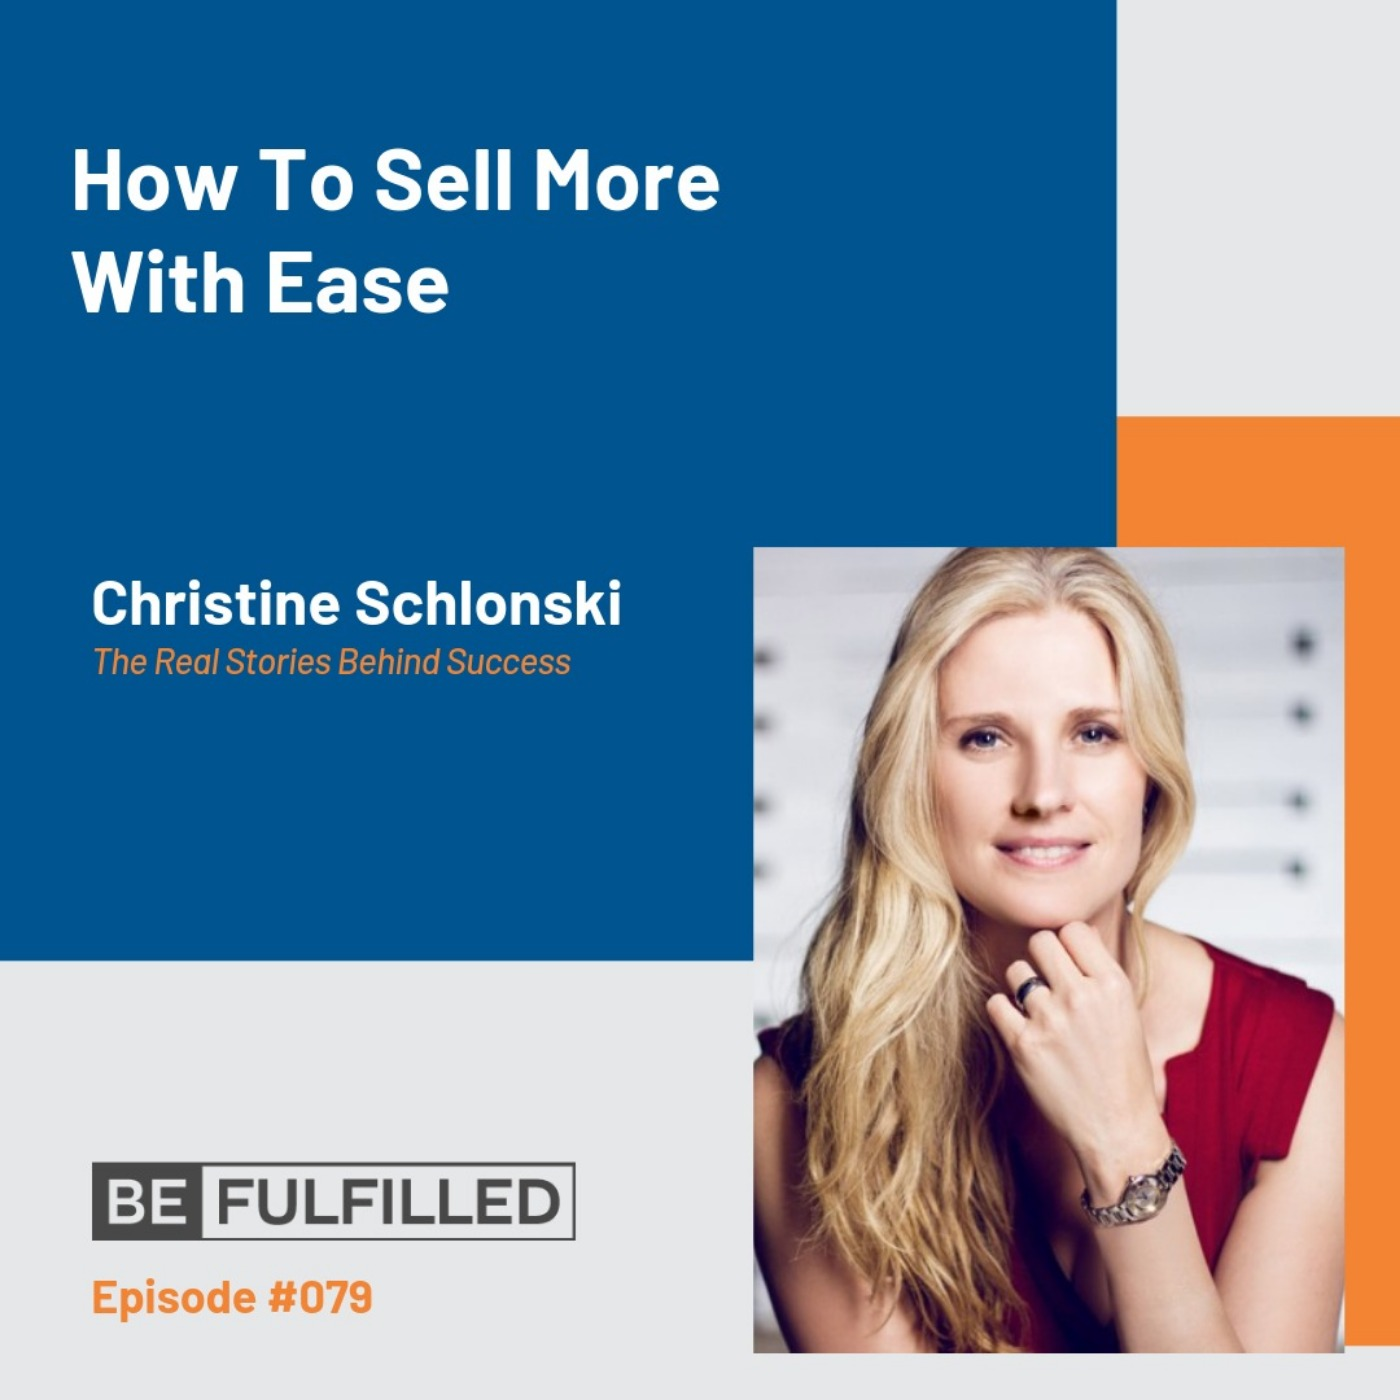 How To Sell More With Ease - Christine Schlonski